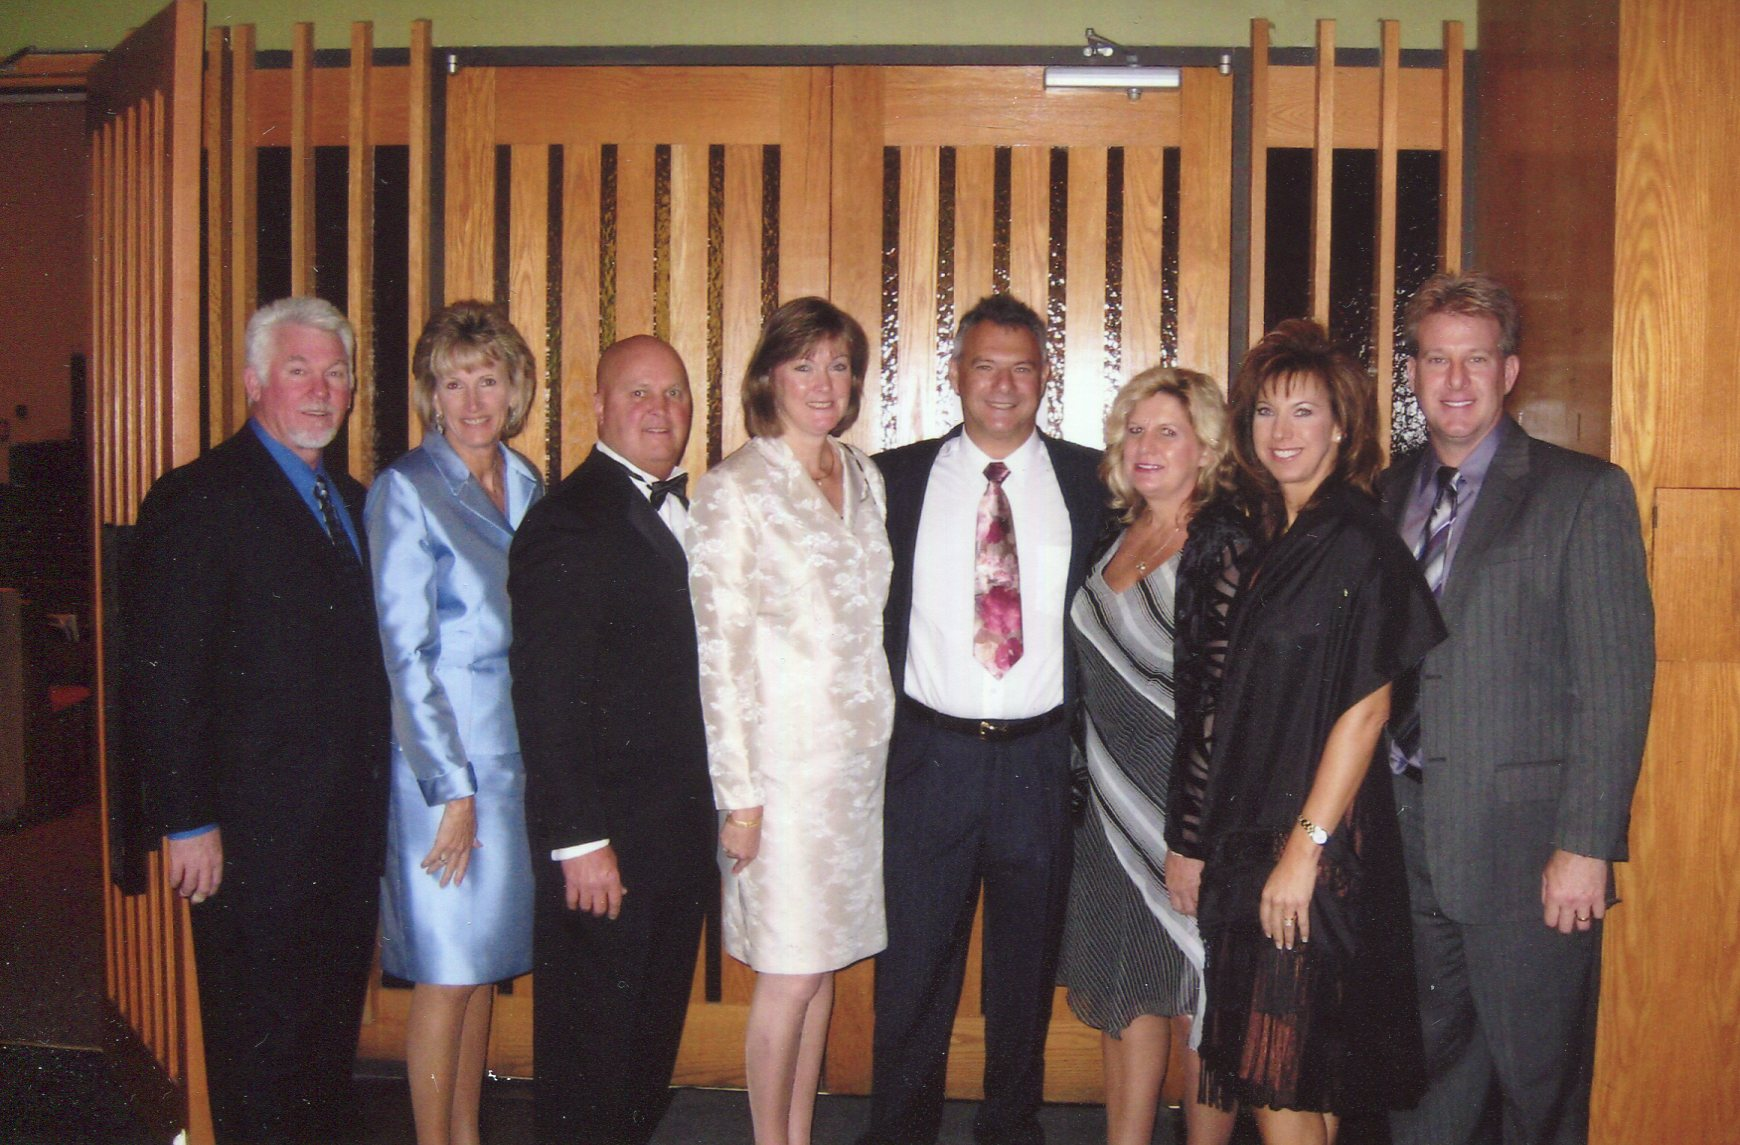 Inge and Kris with cousins Karen and Wendy and spouses and Janine and Joe at cousin Steve's wedding in Toronto Canada in 2006.